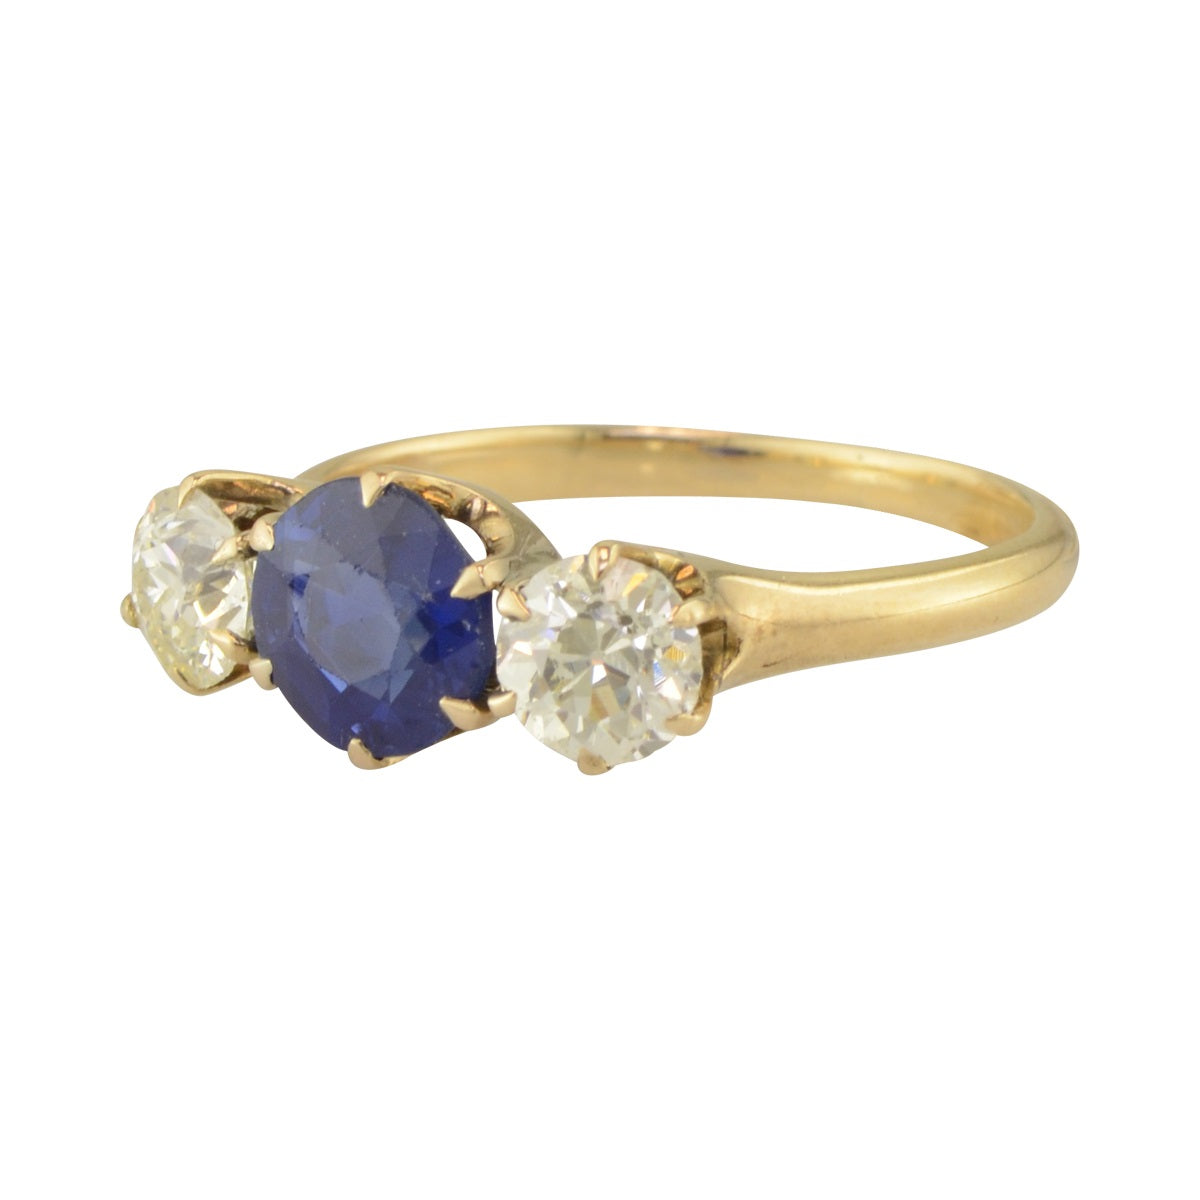 Three stone antique engagement ring with sapphire and diamond in 14k yellow gold.